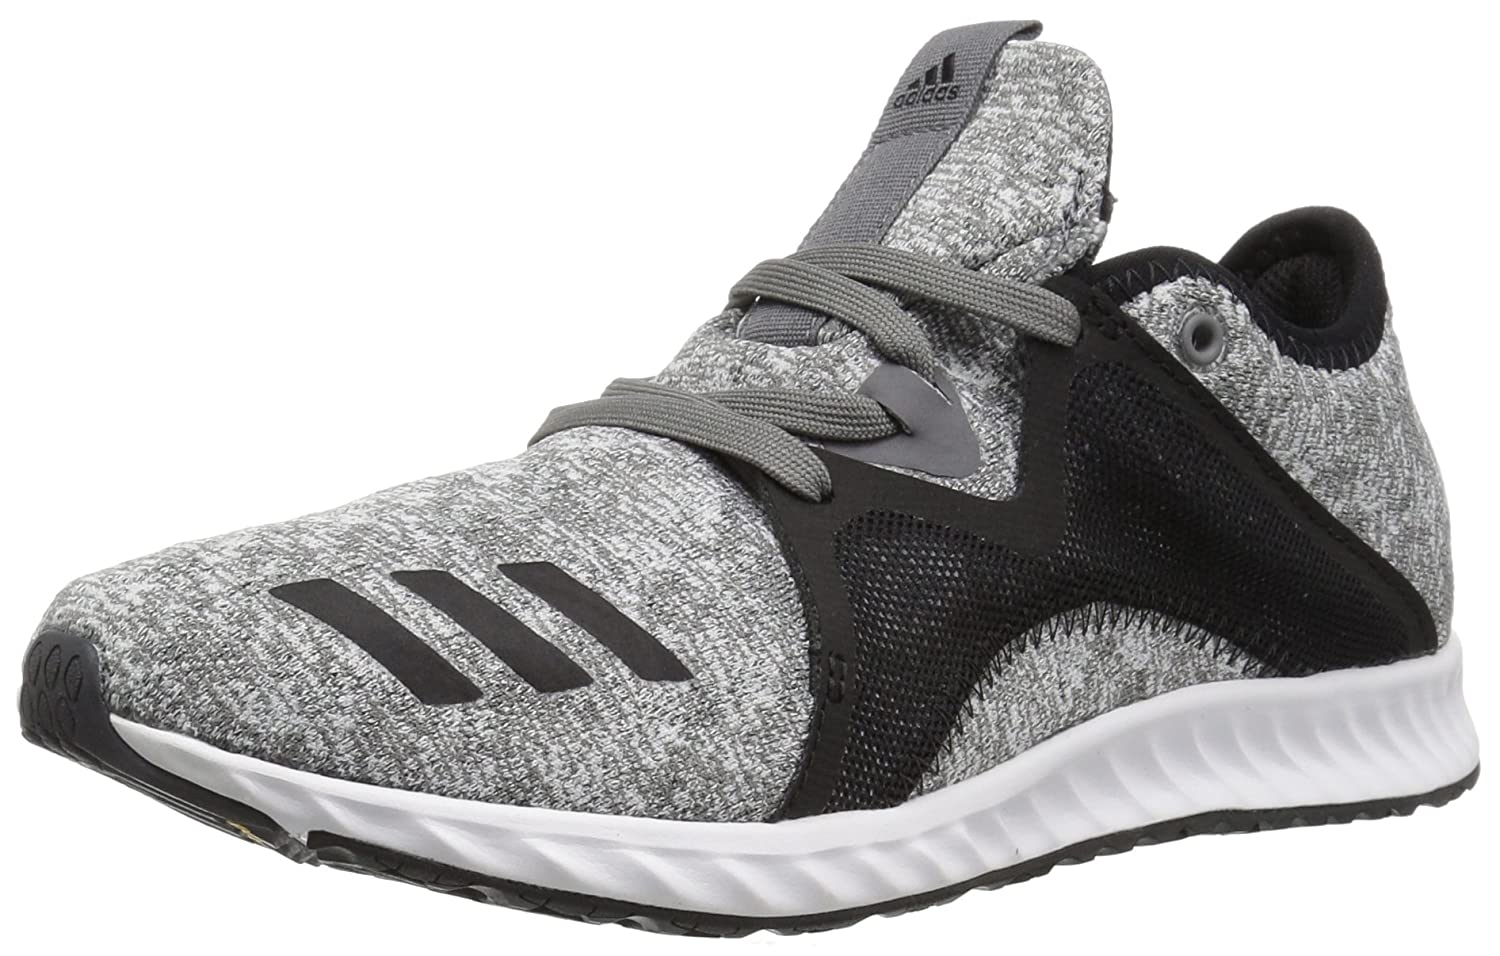 adidas Women's Edge Lux 2 W B071LF6LV8 10.5 B(M) US|Grey Four/Core Black/White